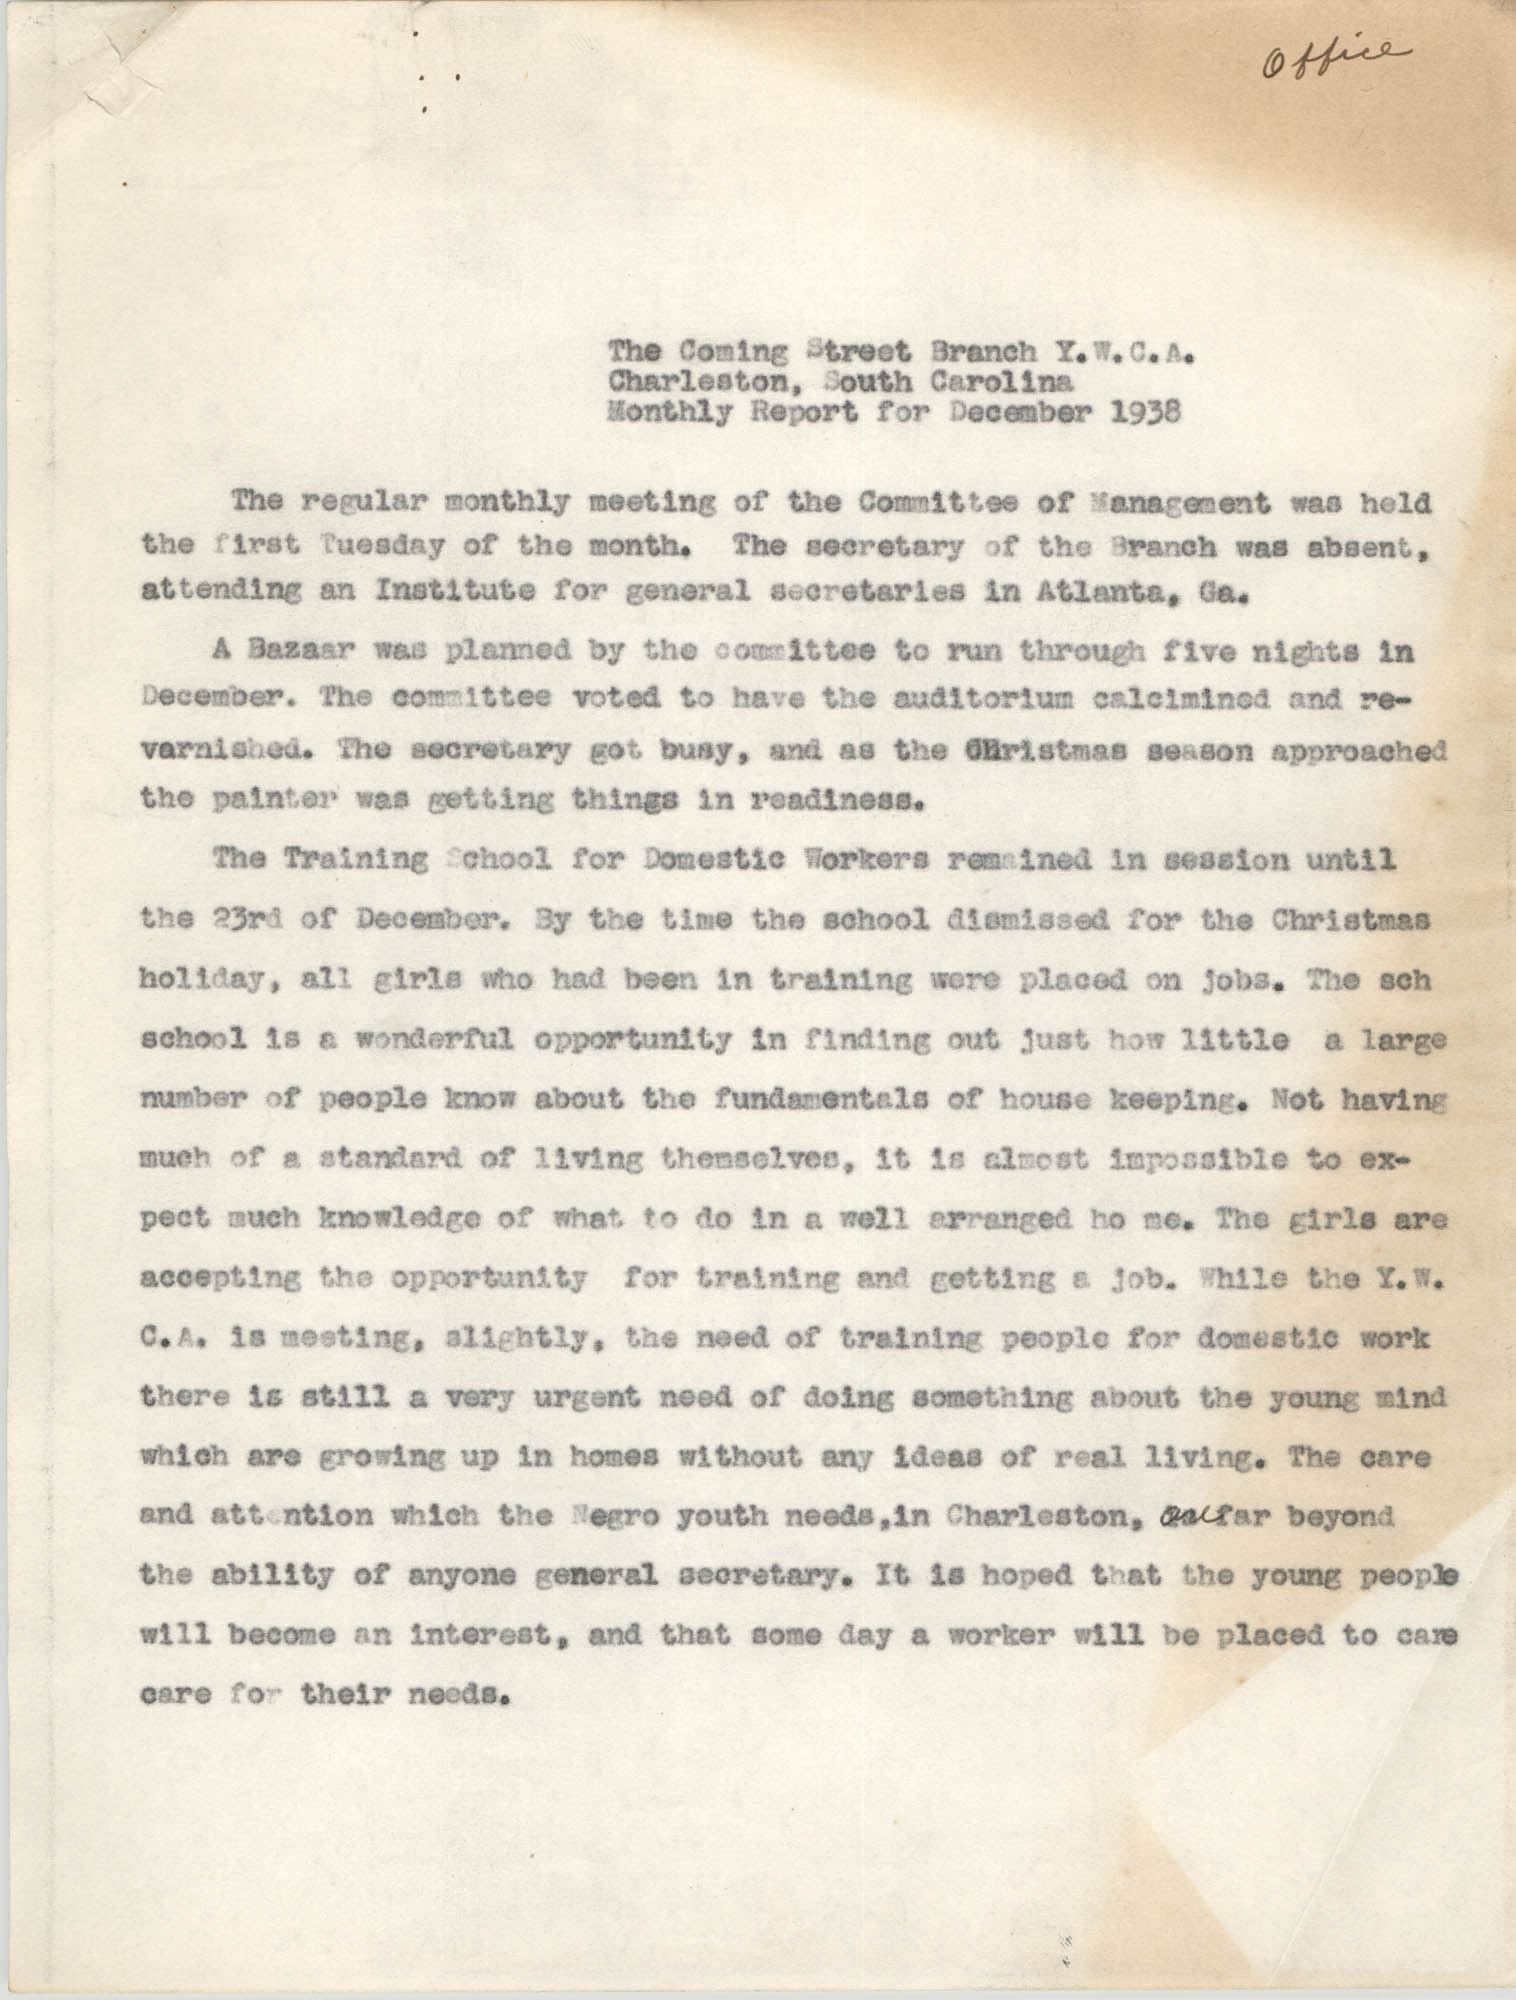 Monthly Report for the Coming Street Y.W.C.A., December 1938